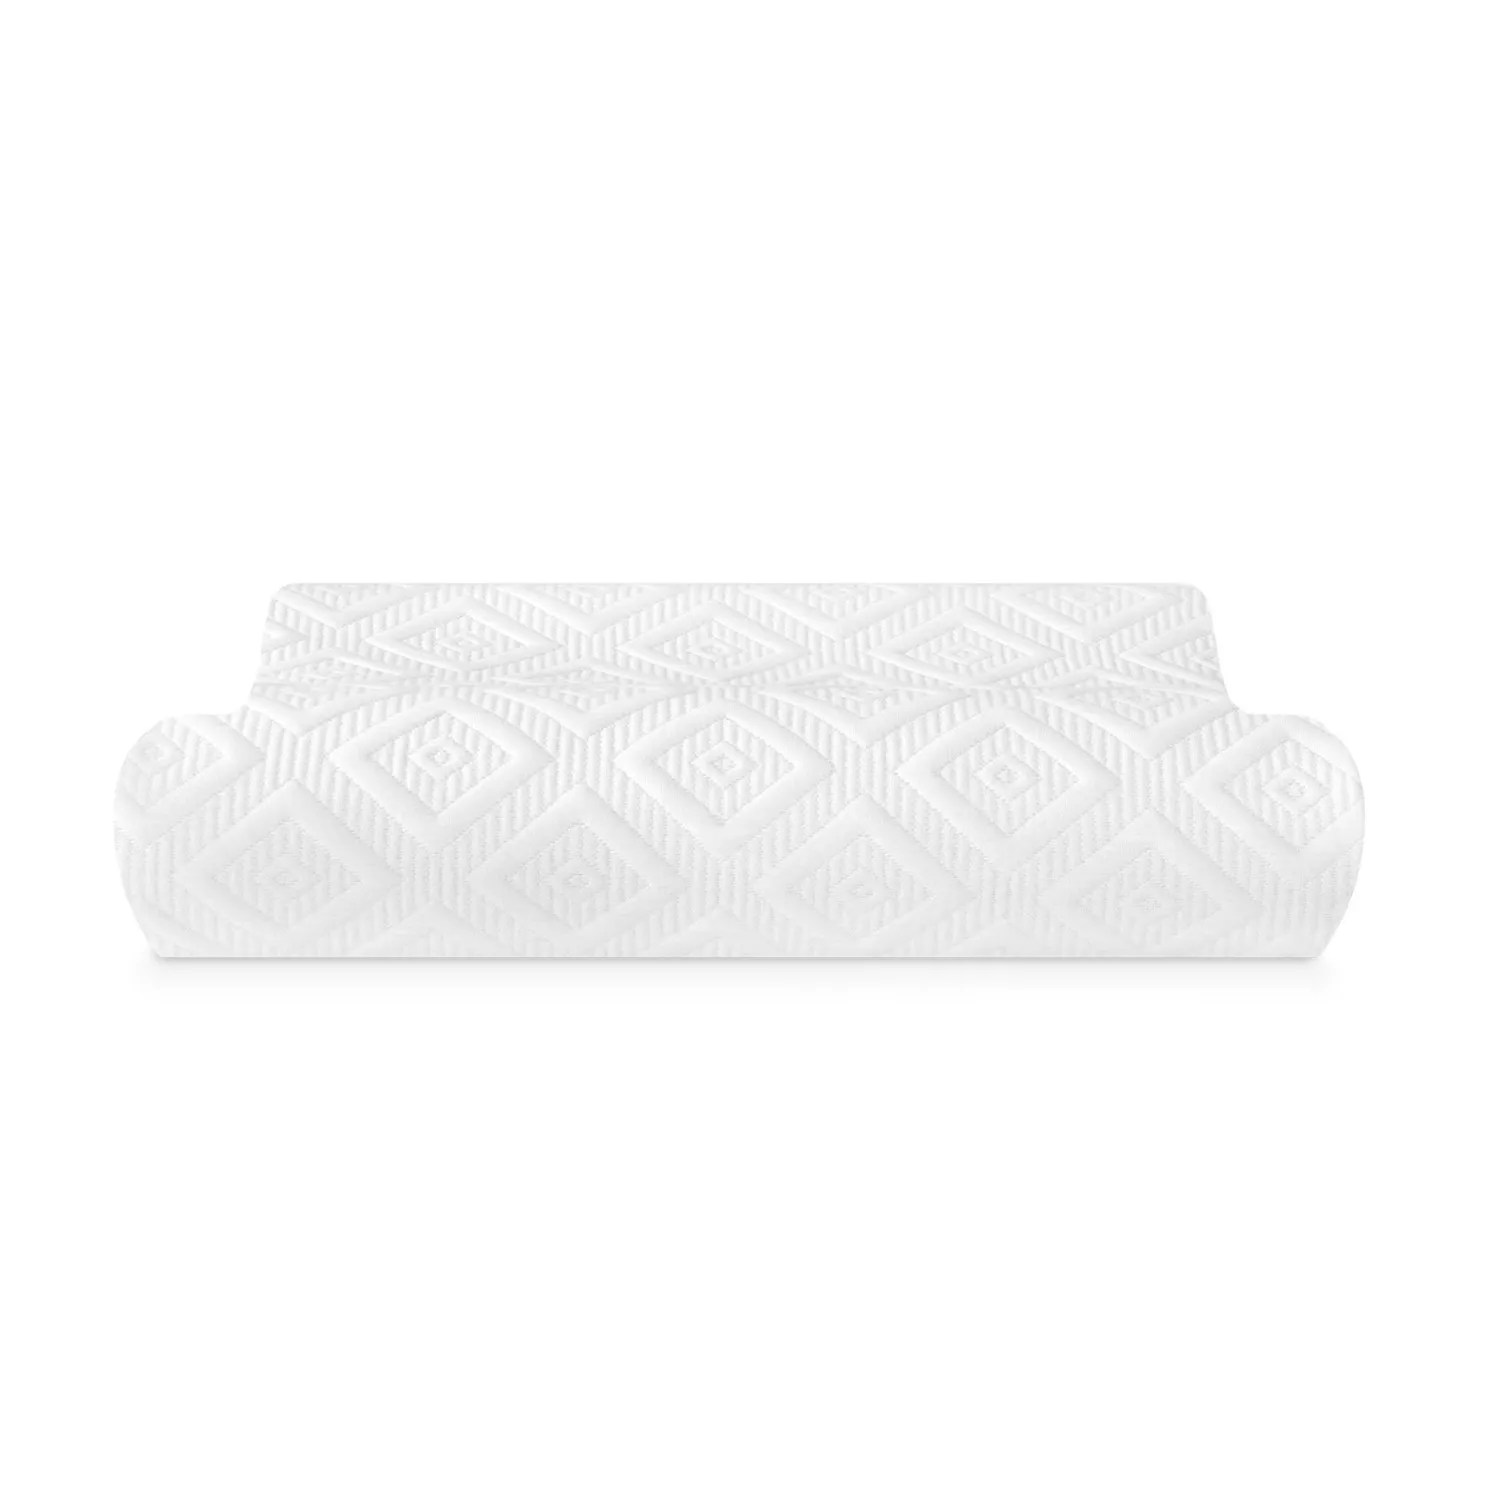 sensorpedic contour memory foam pillow for side and back sleepers